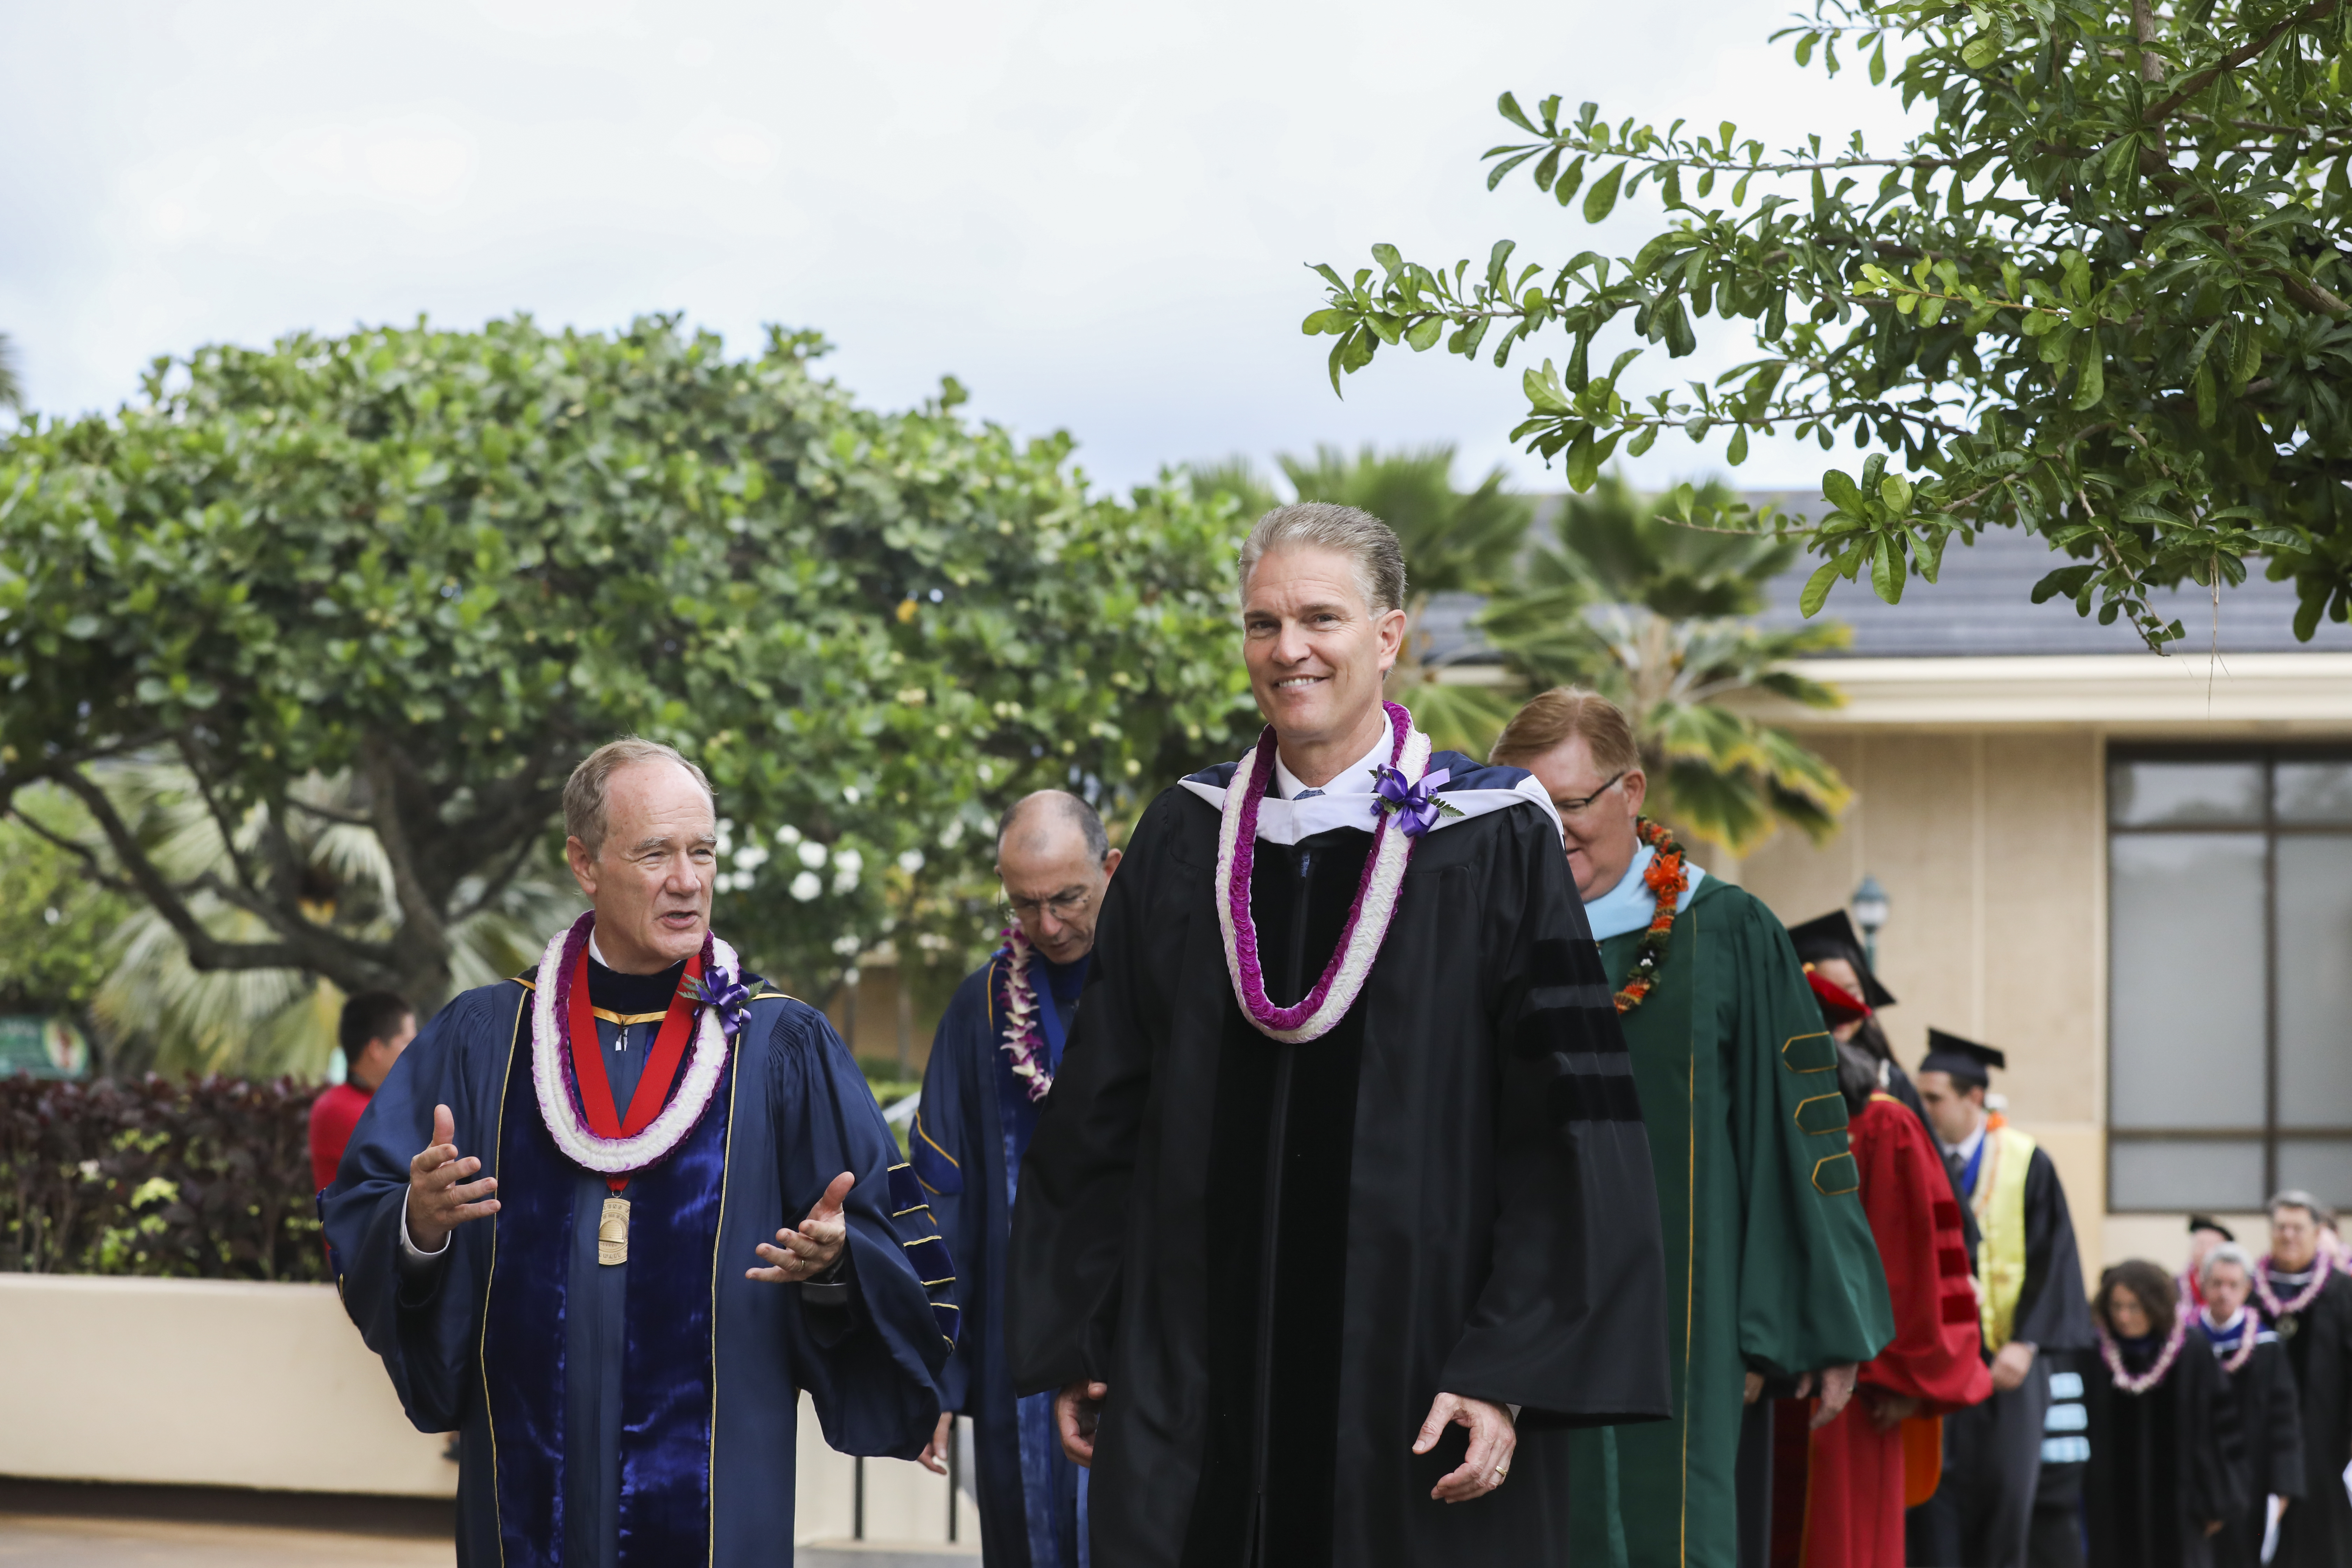 Elder Brian K. Taylor, a General Authority Seventy, walks with Brigham Young University-Hawaii President John S. Tanner and other faculty and staff at commencement on June 29, 2019.